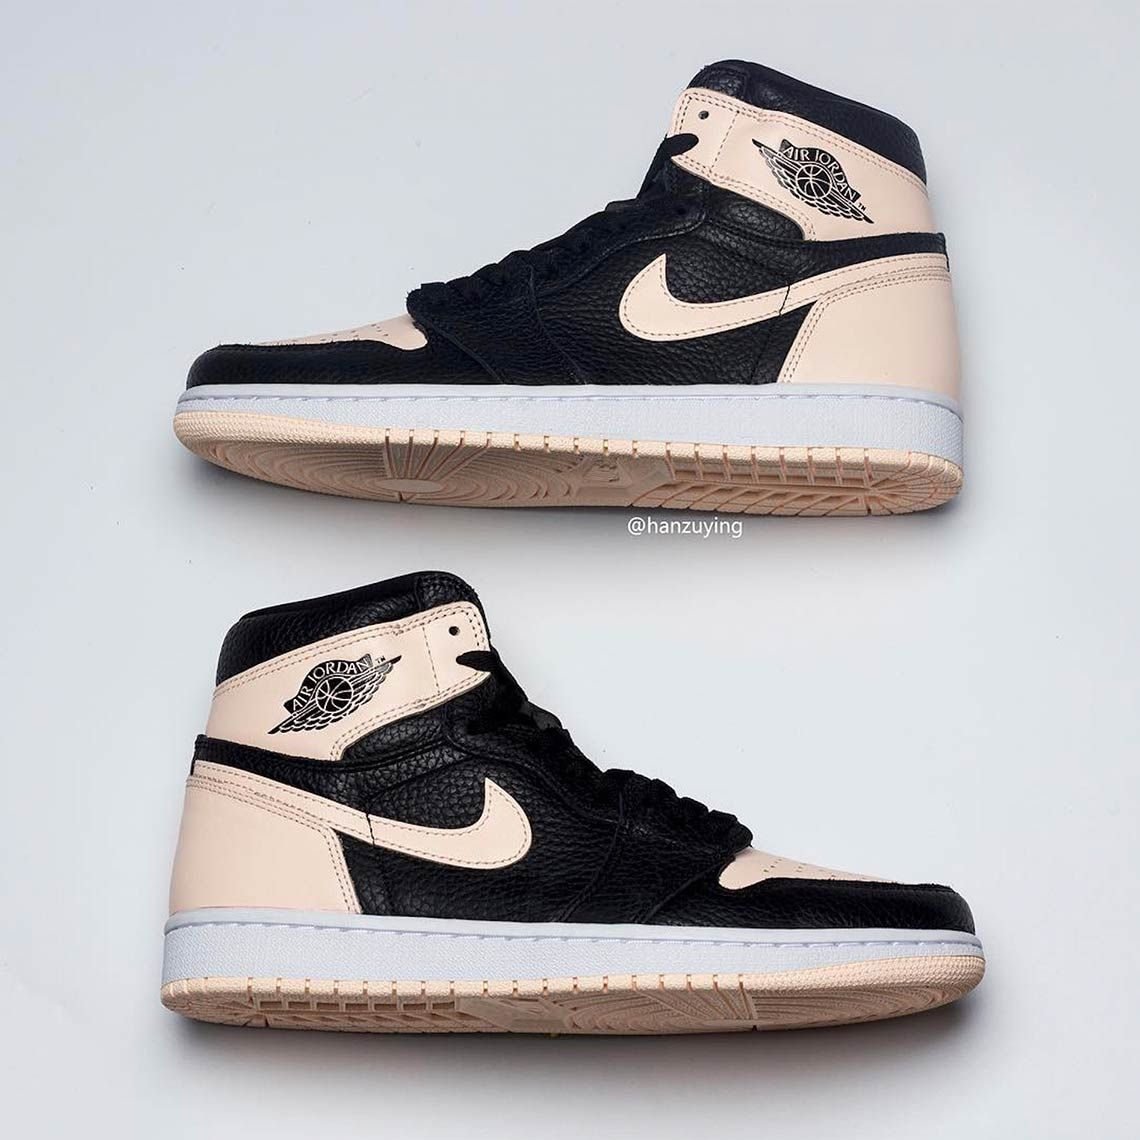 082590c1c325 Detailed Look At The Air Jordan 1 Retro High OG Crimson Tint